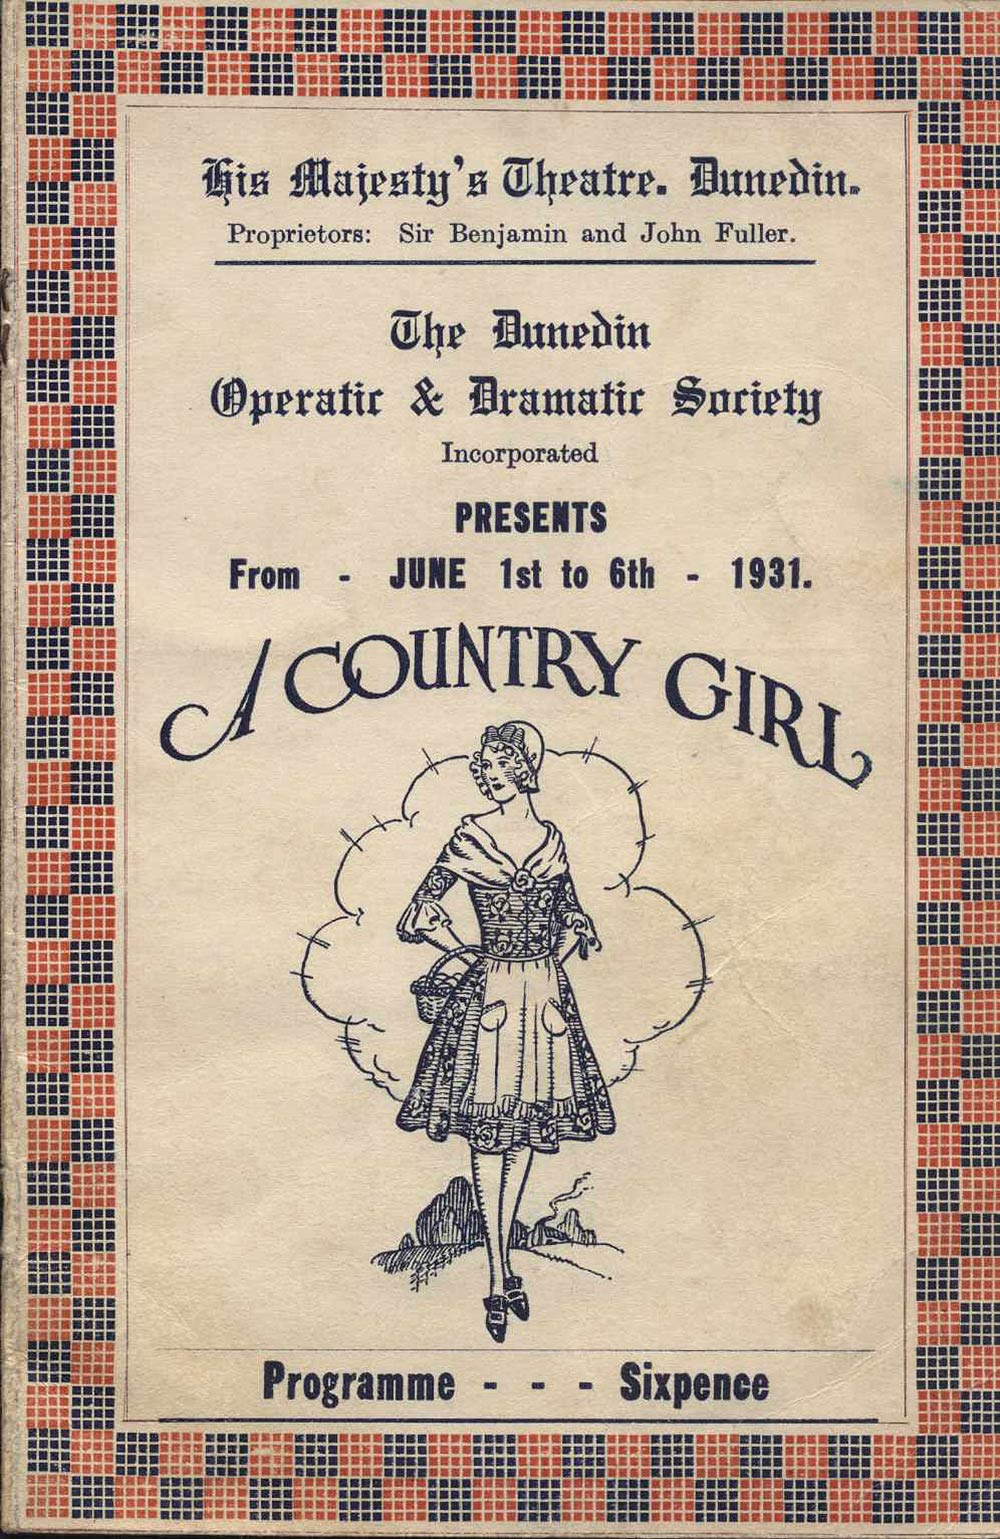 <em>A country girl</em>. Book by James T. Tanner; lyrics by Adrian Ross; music by Lionel Monckton. (Dunedin Operatic & Dramatic Society). His Majesty's Theatre, Dunedin, June 1-6, 1931.